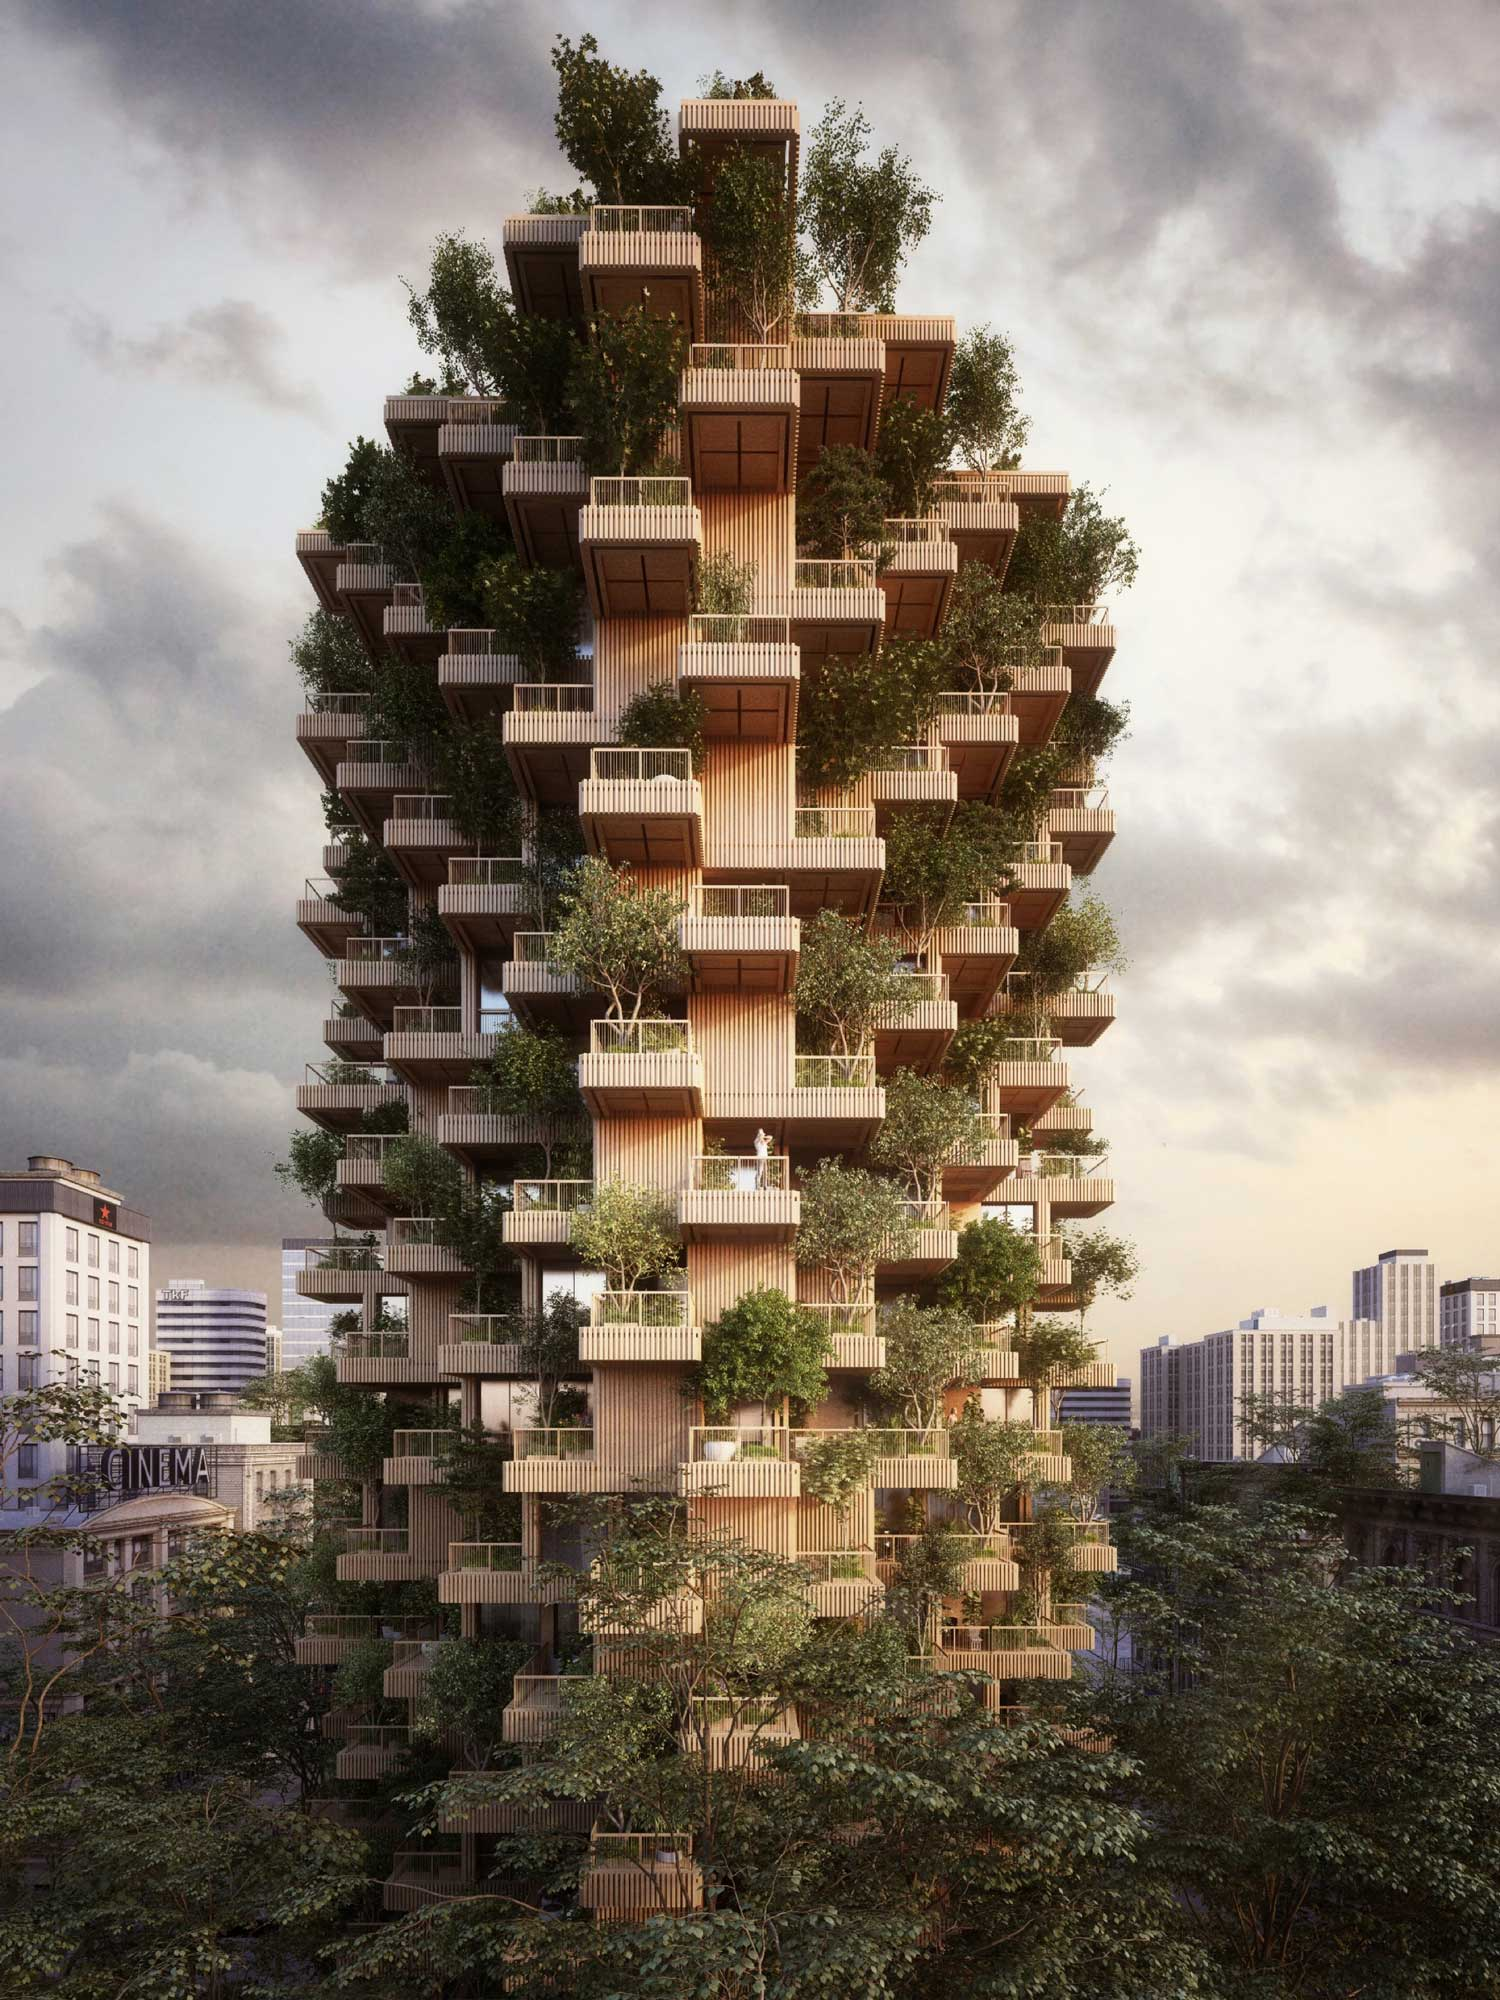 Penda Designs Modular Timber Tower Inspired by Habitat 67 for Toronto| Yellowtrace